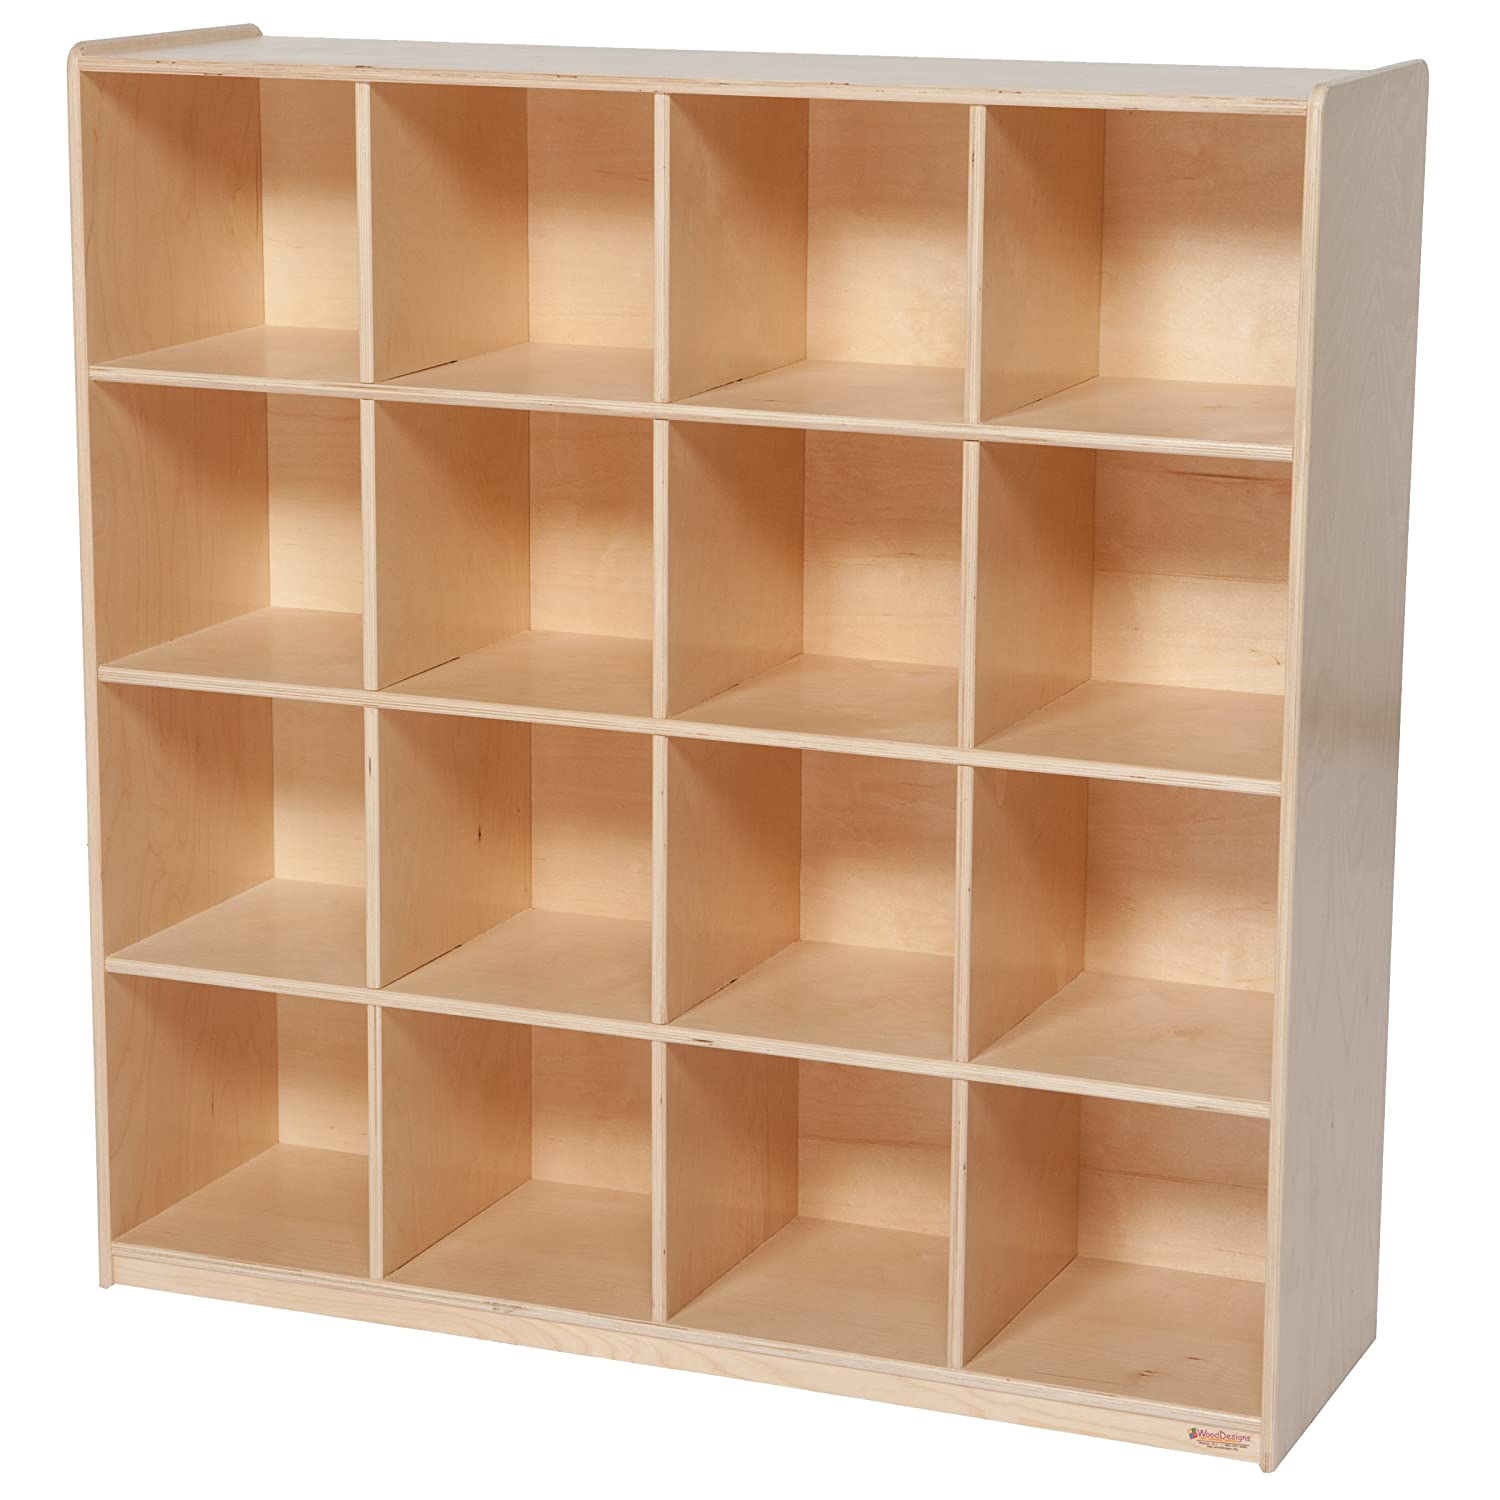 Charmant Amazon.com: Wood Designs WD50916 (16) Big Cubby Storage, 49 X 48 X 15 (H X  W X D): Industrial U0026 Scientific